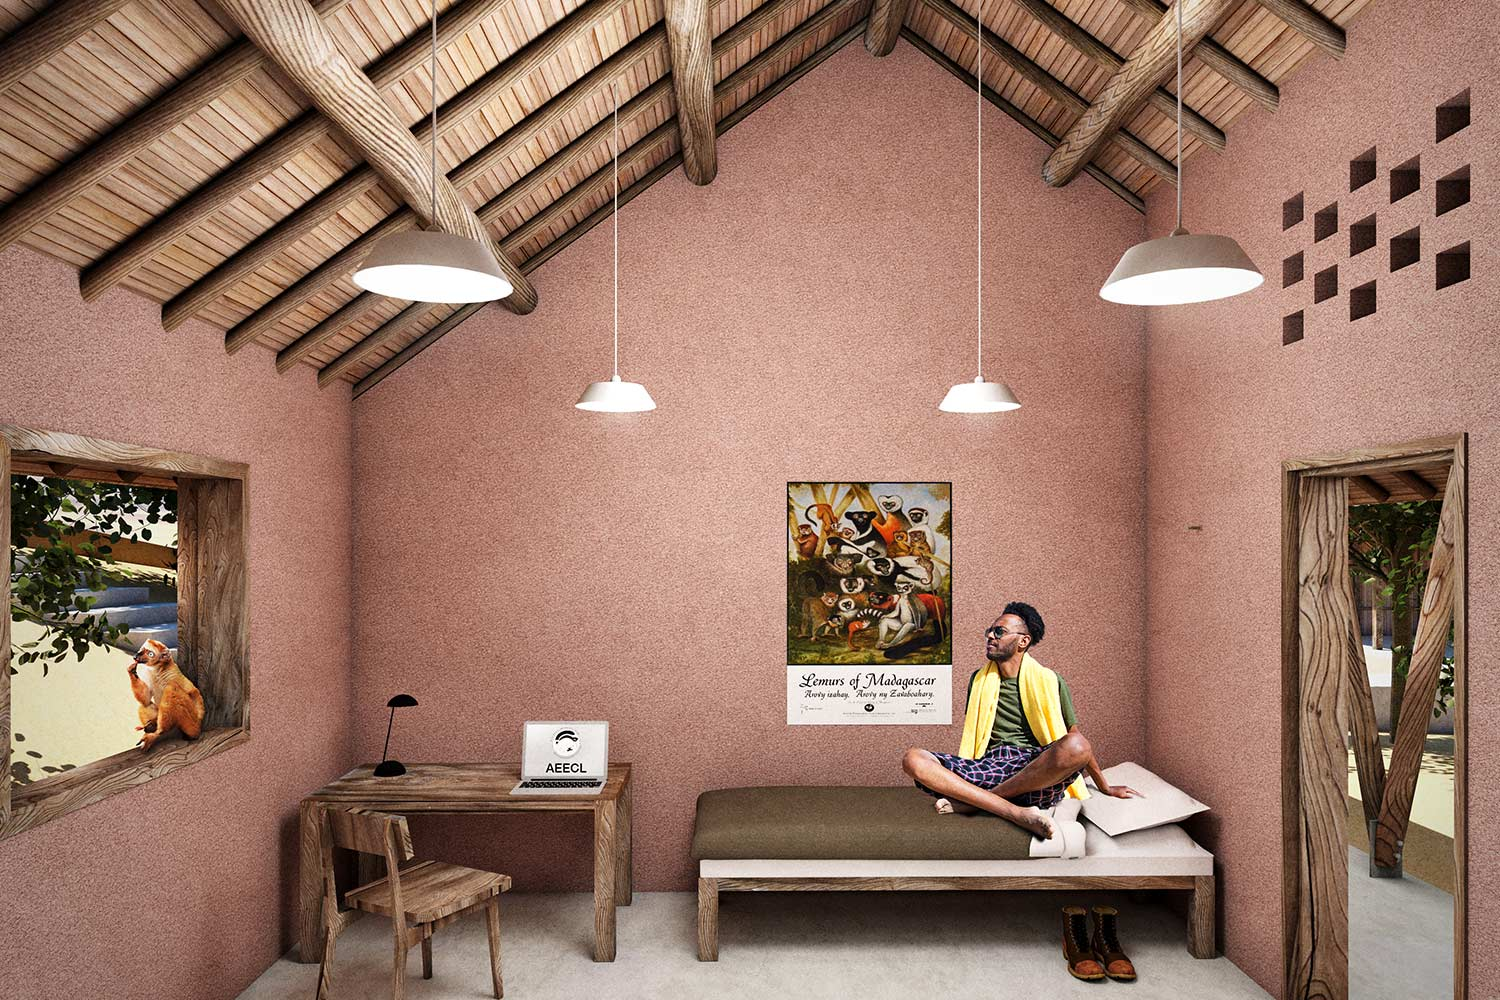 Bedroom in Ankarafa Research Station render